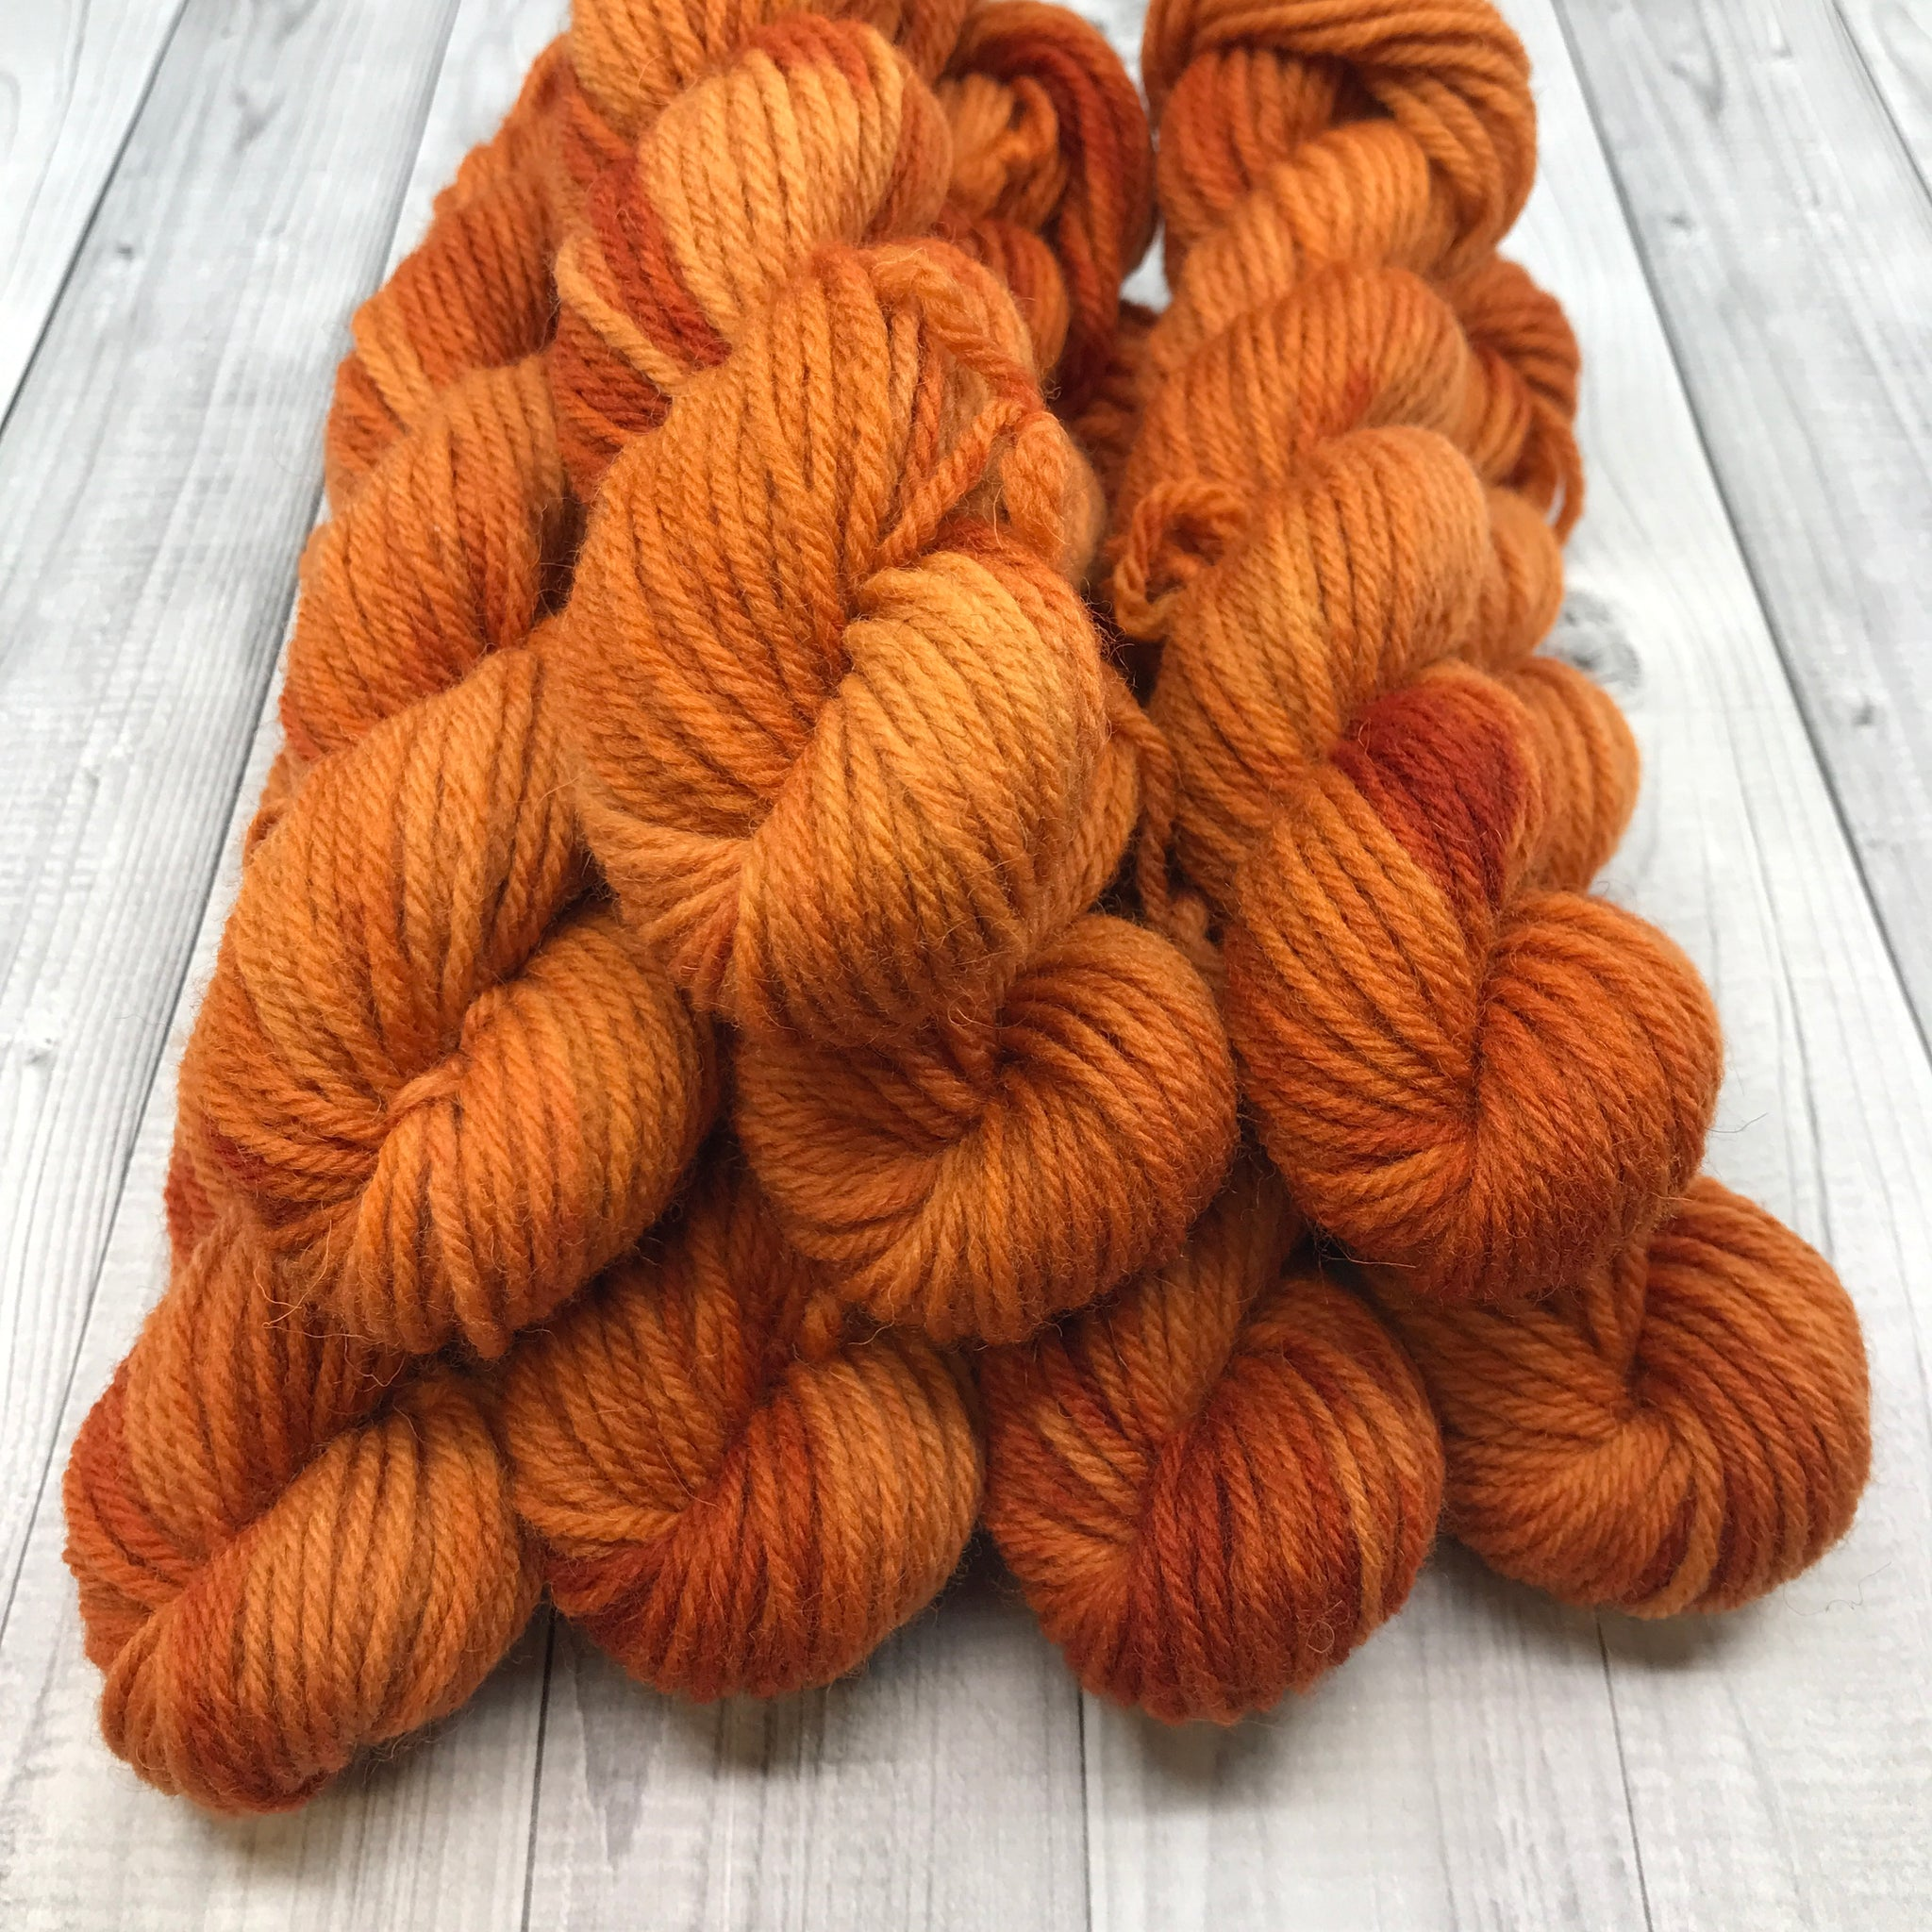 Hunter Highland DK - 20g Mini Skein- 2019 Fall- Pumpkin Please